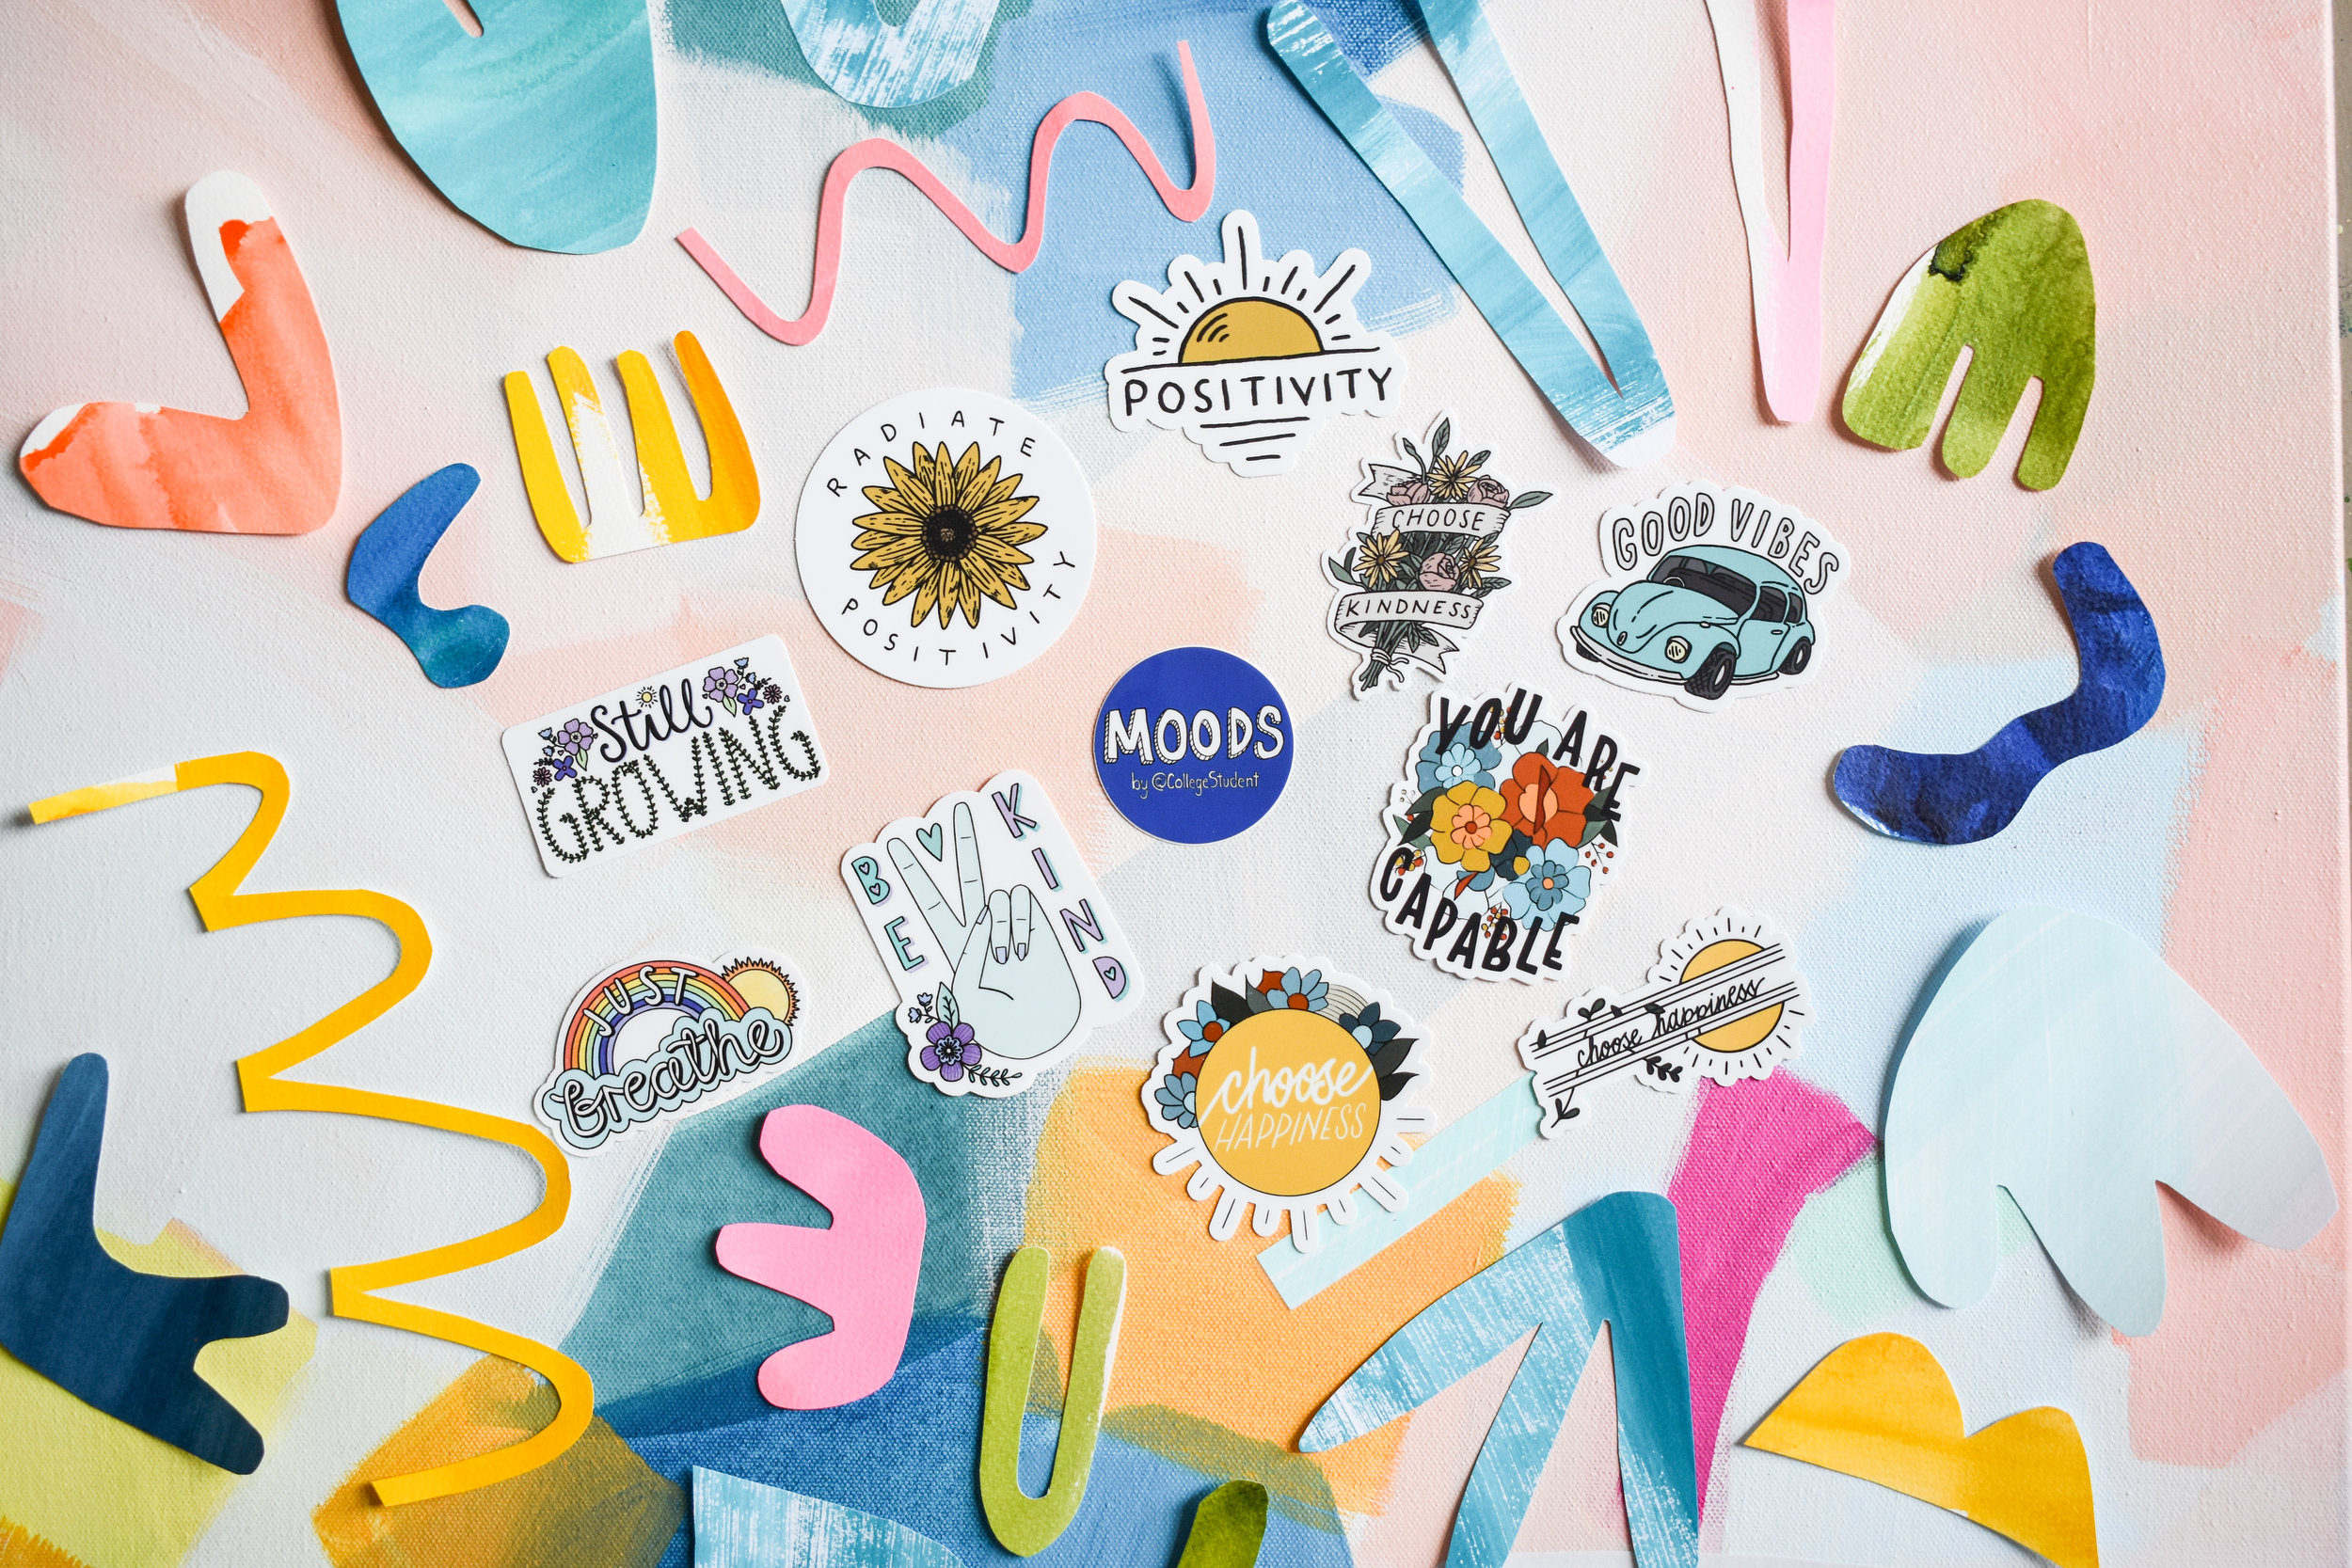 Taylor Lee Paints Brand Ambassador Big Moods College Student Stickers